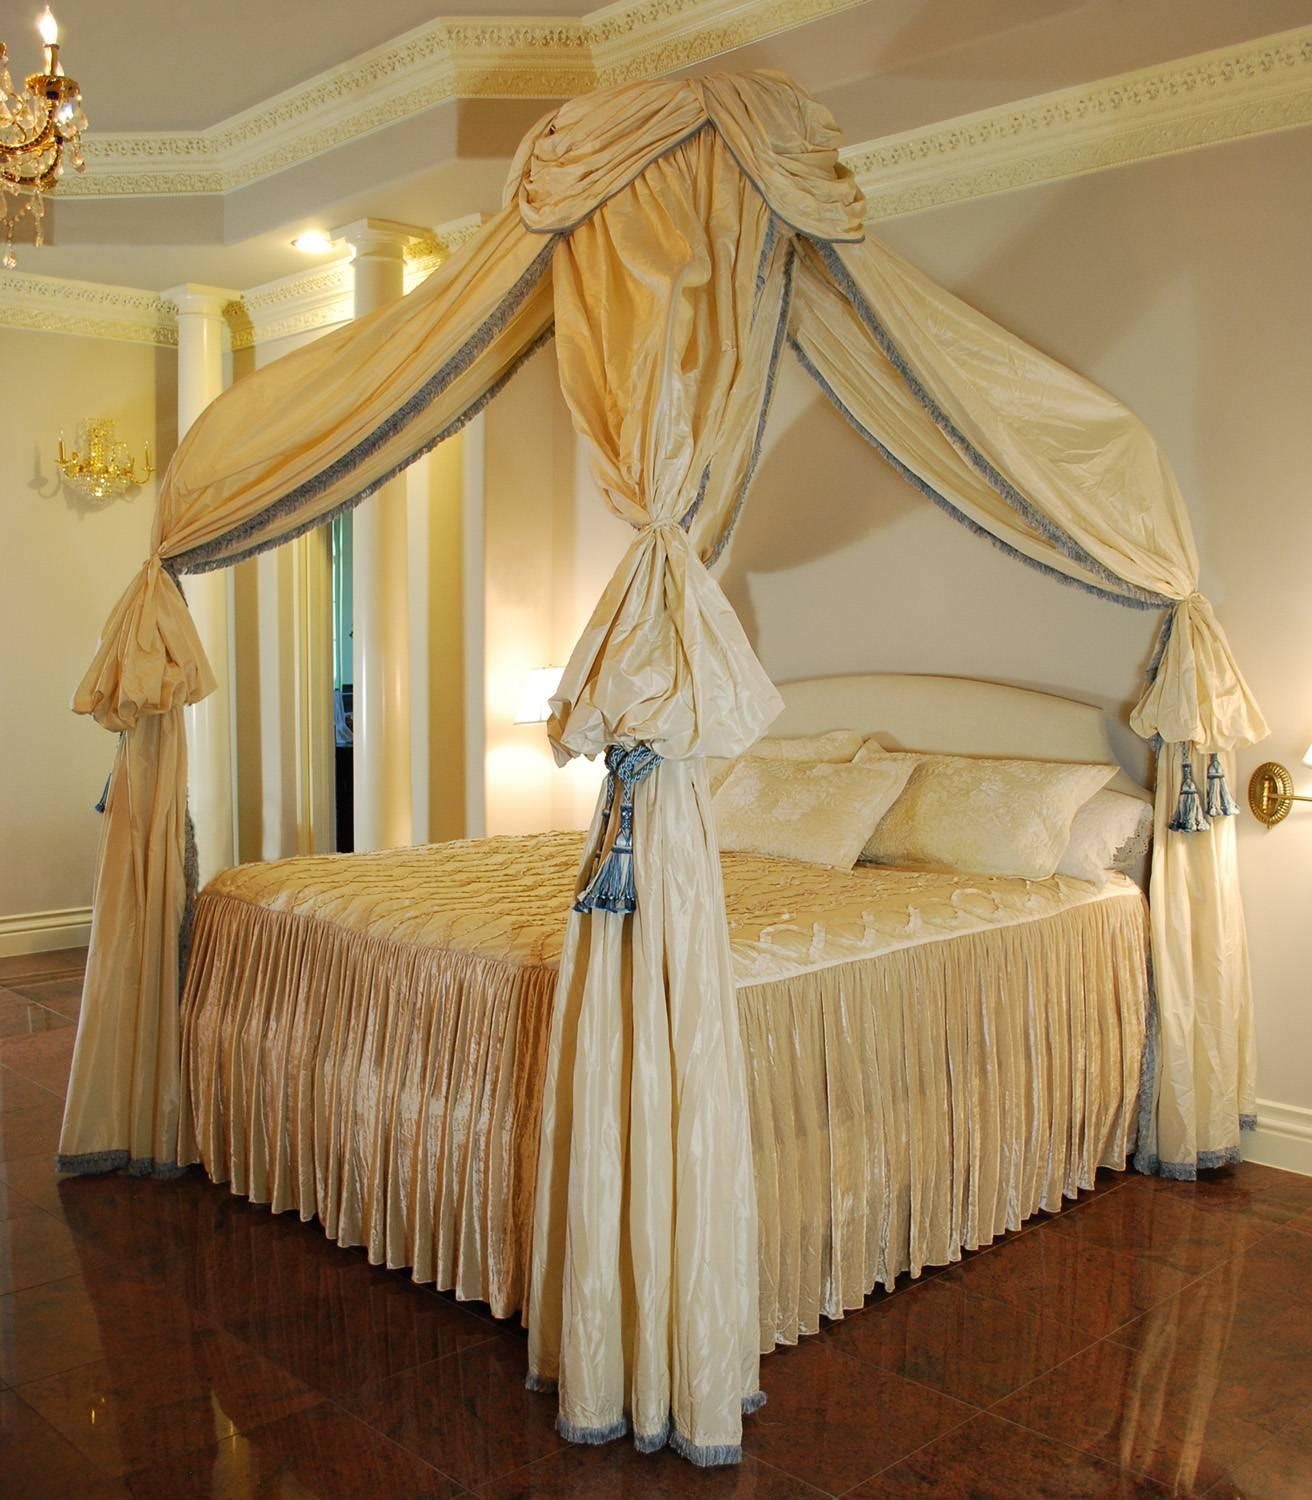 A sumptuous custom vintage canopy king bed with upholstered headboard and fine resent silk drapery. & Custom Canopy Bed King Size Frame Silk Drapery For Sale at 1stdibs